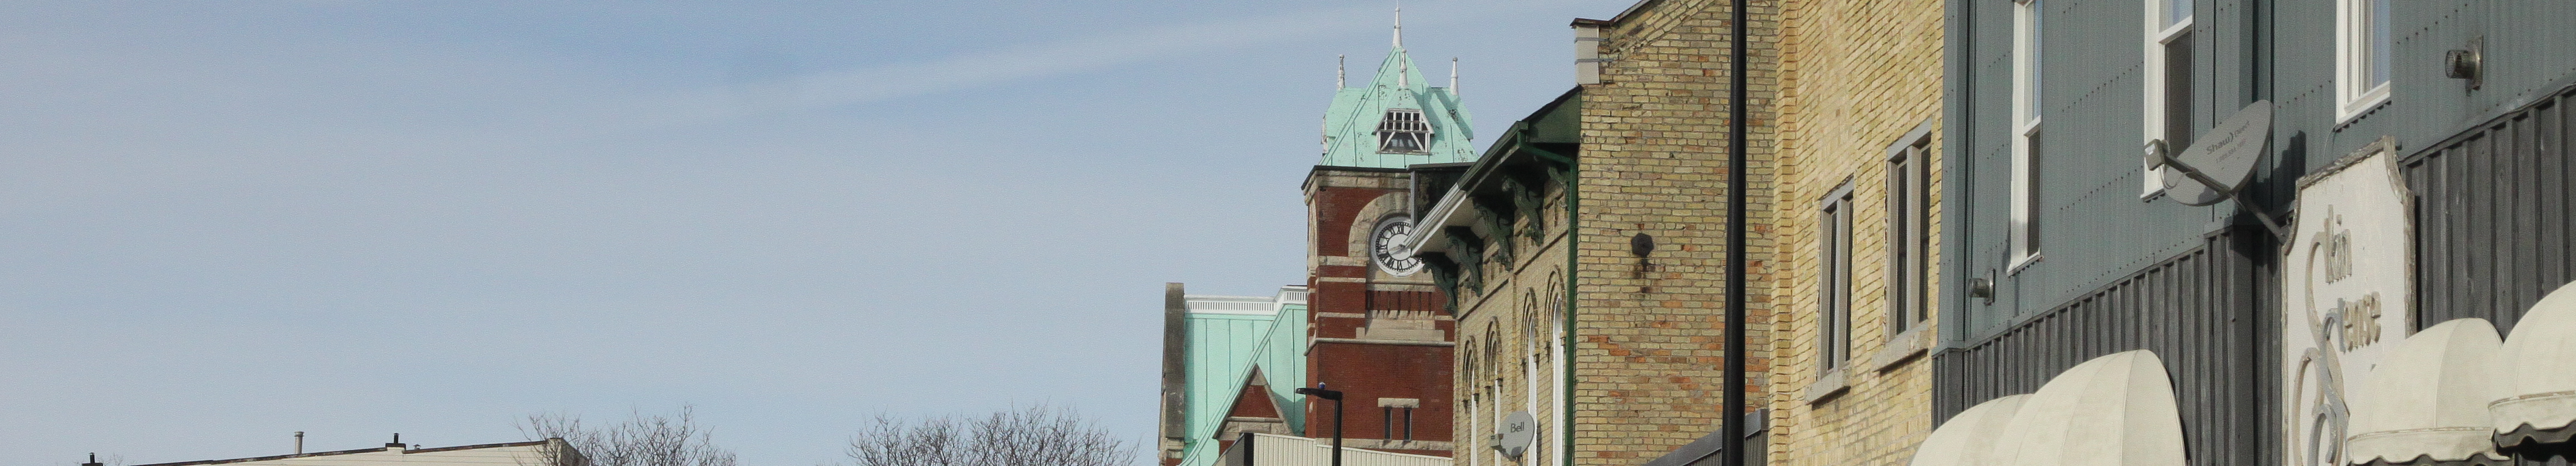 STRATHROY: AN ACTIVE AND THRIVING COMMUNITY WEST OF LONDON, ONTARIO